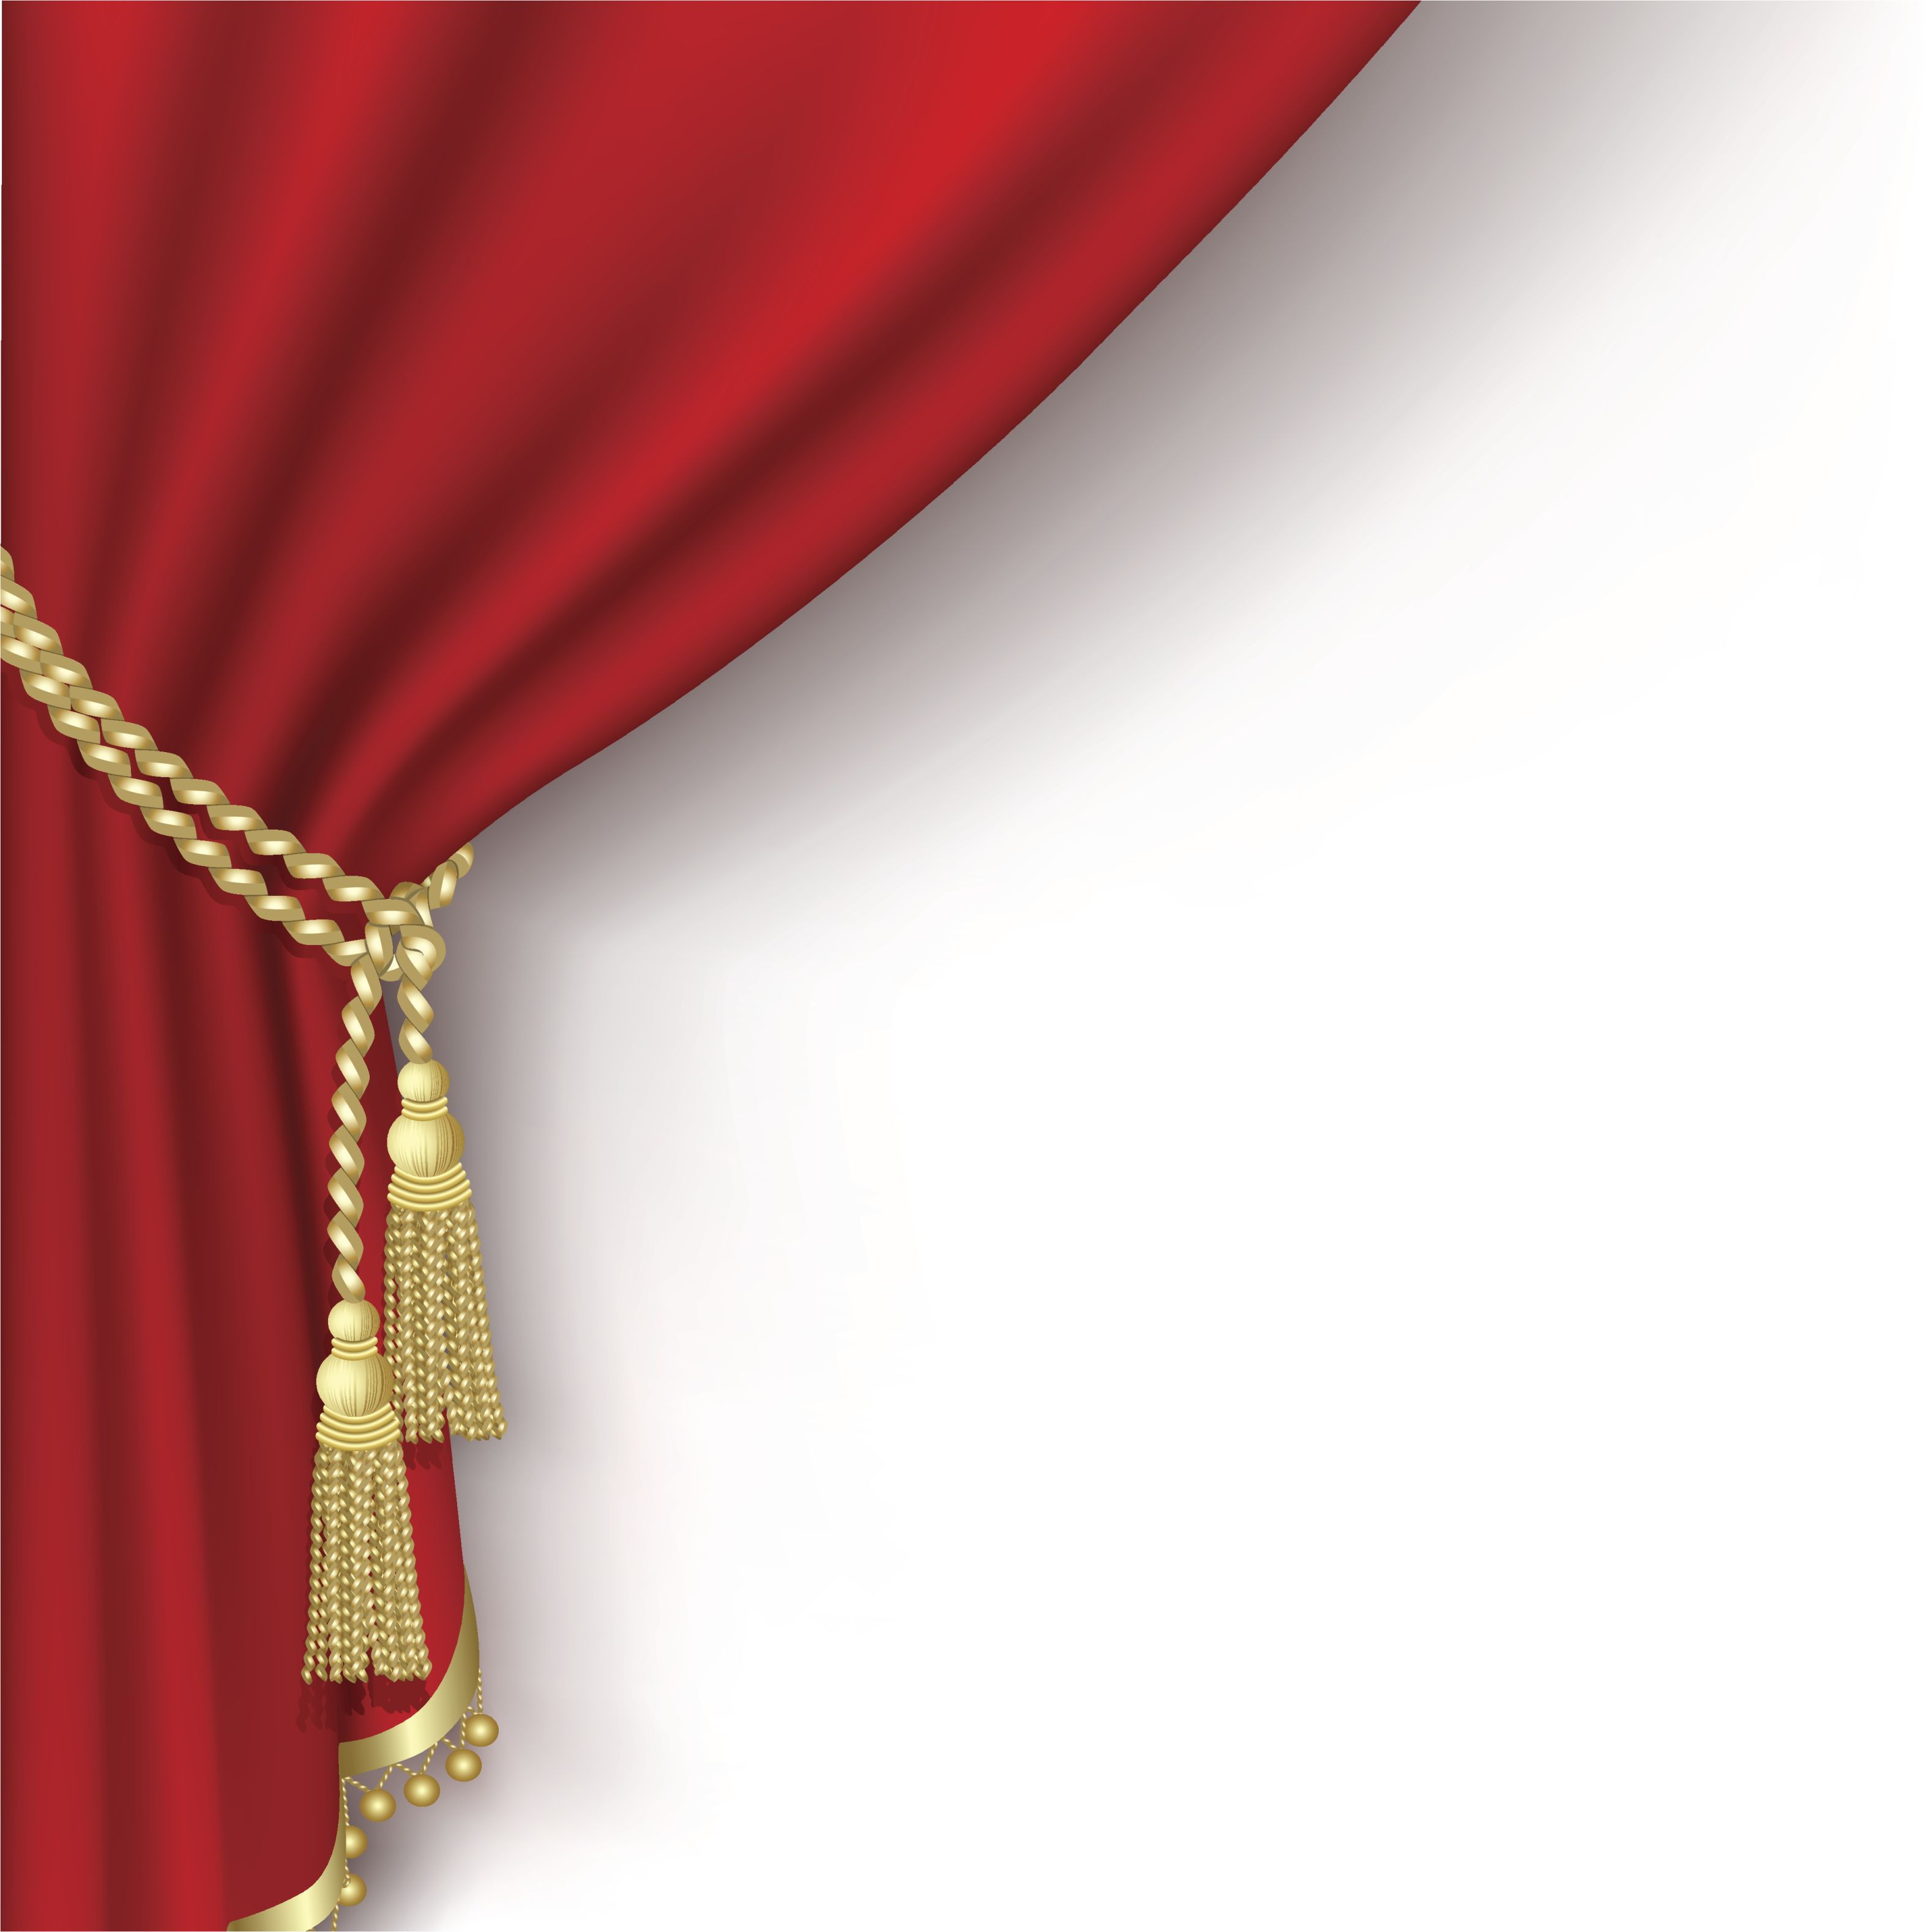 Gold stage curtain - Graphic Drama Red Curtain Pulled Back By Gold